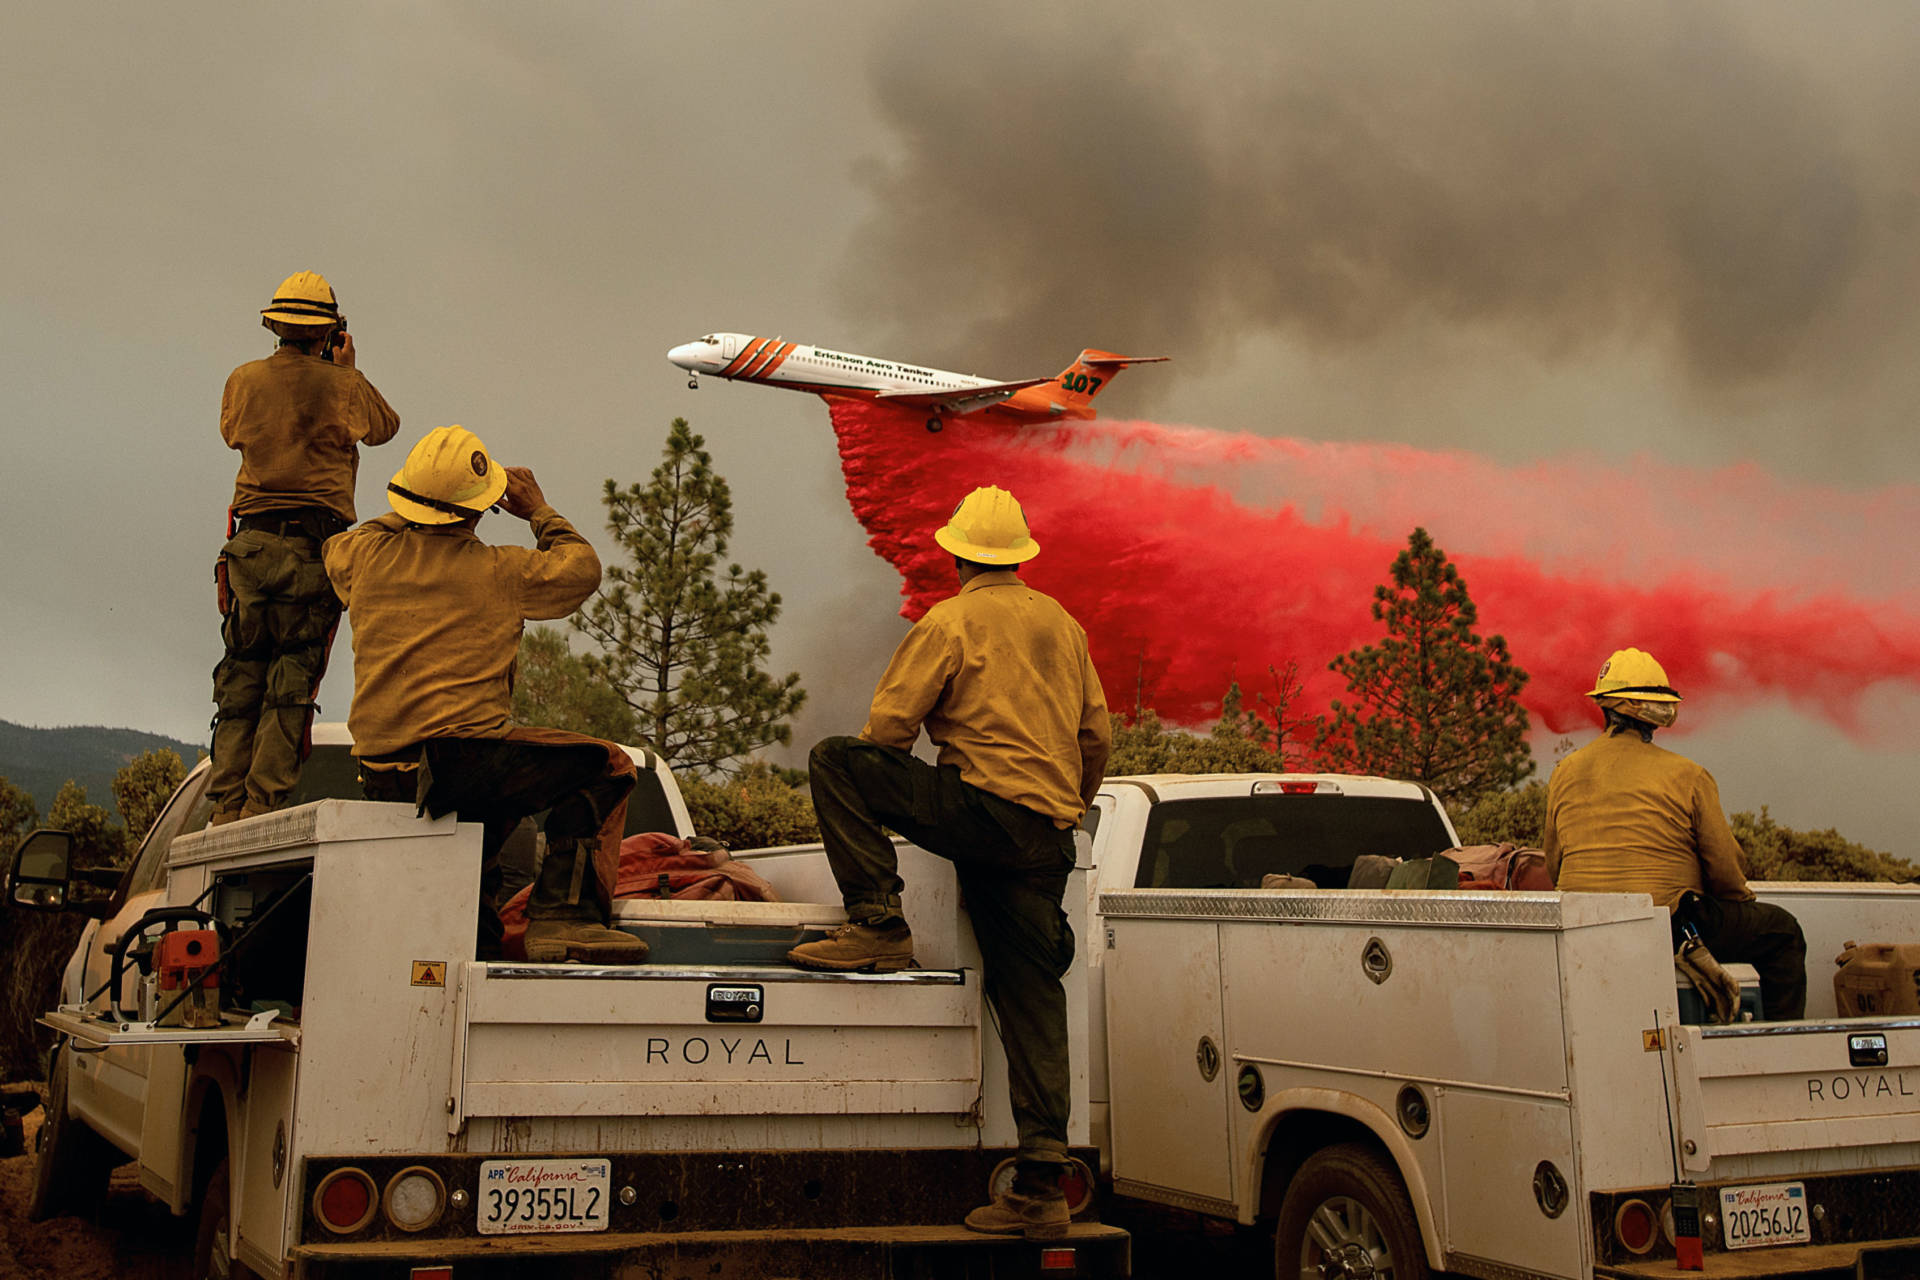 Firefighters watched Saturday (July 21) as an air tanker dropped retardant while battling the Ferguson Fire in the Stanislaus National Forest, near Yosemite National Park. Noah Berger/AFP-Getty Images